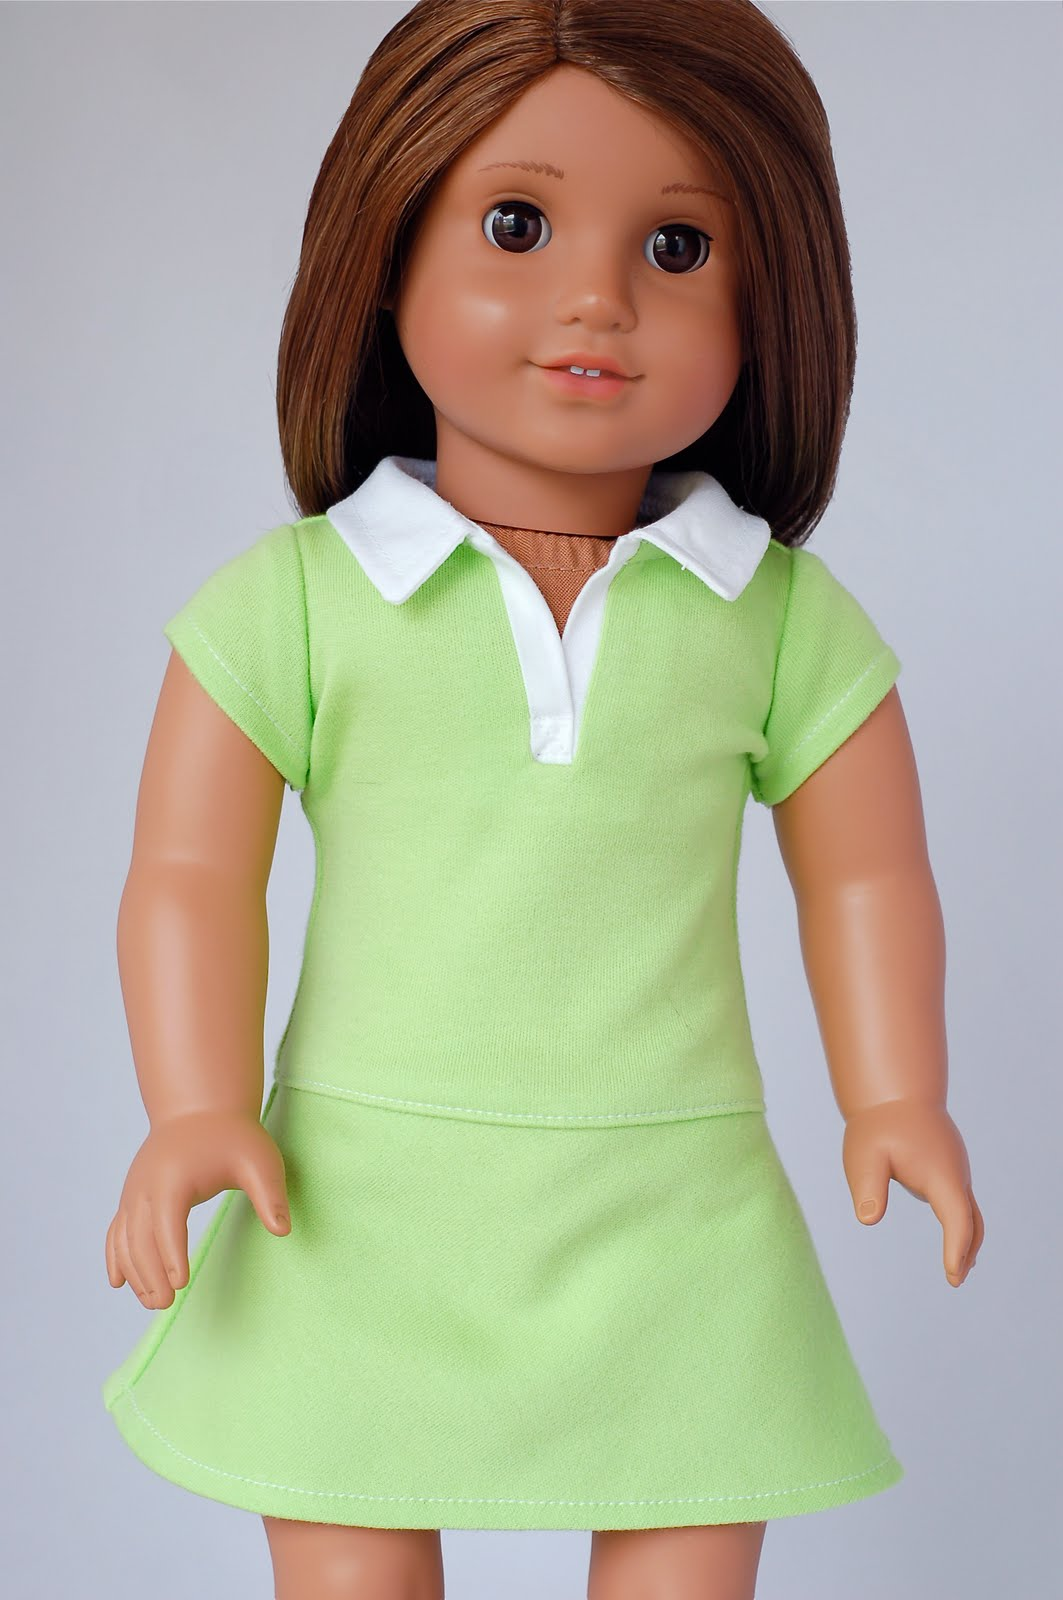 Doll Clothes Patterns By Valspierssews Review Of American: American Girl Doll Clothes Pattern: Polo Shirt Dress